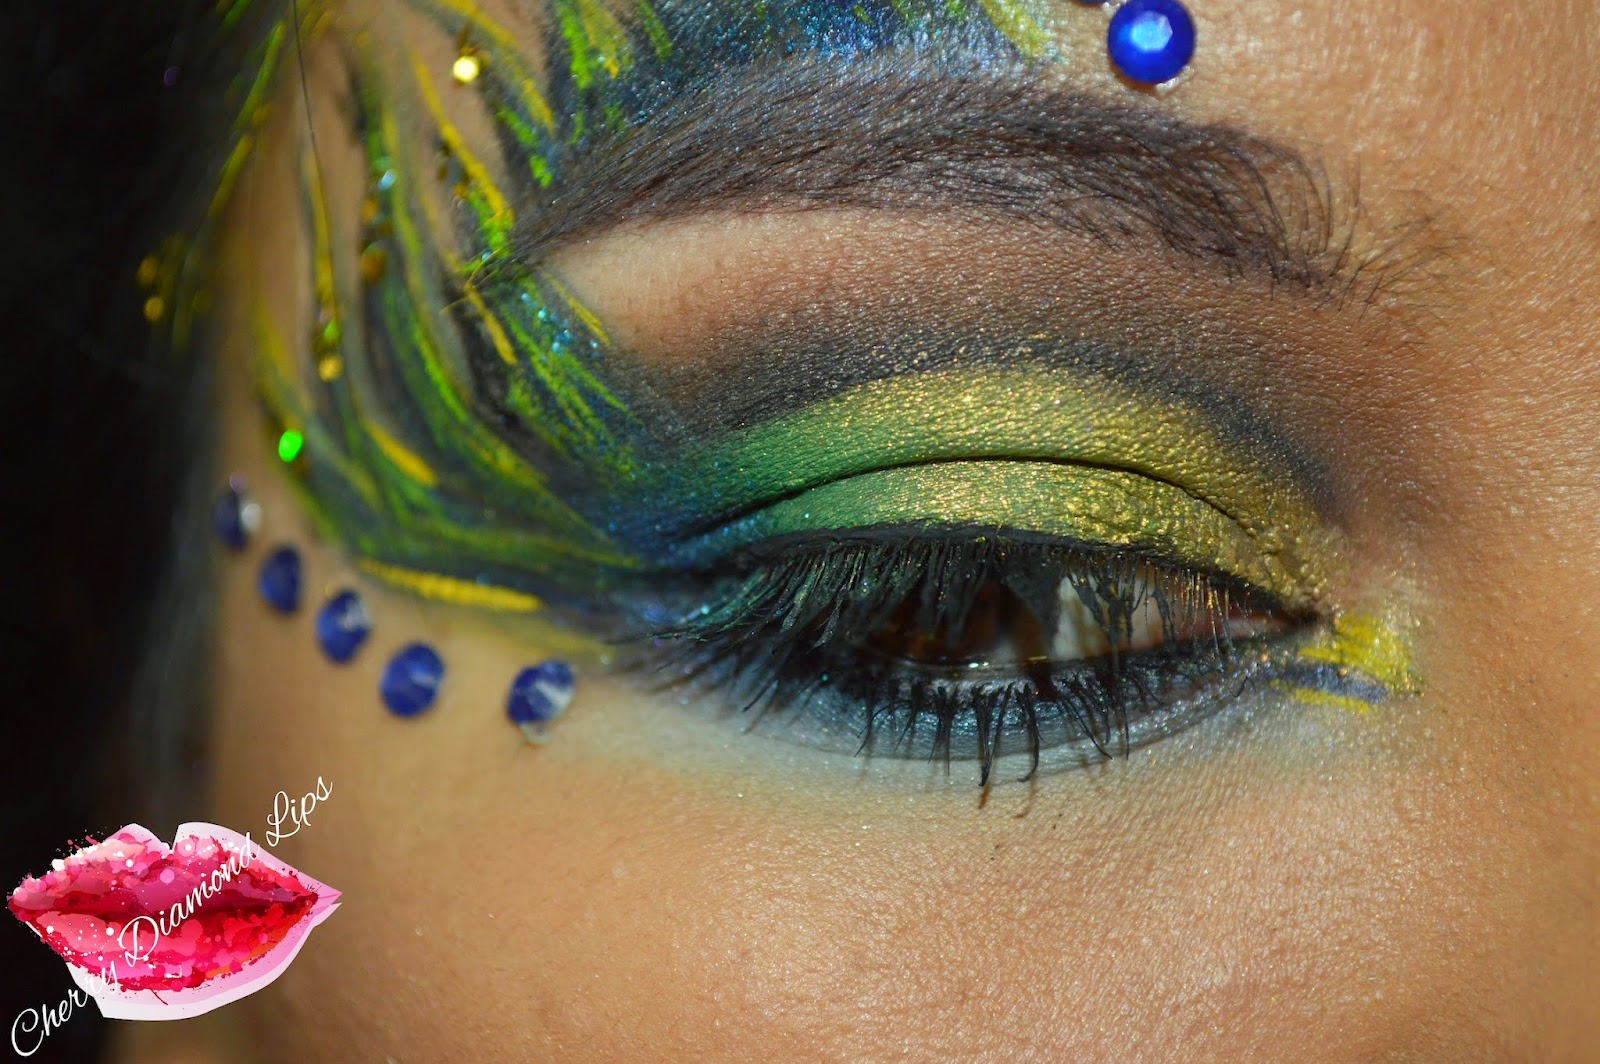 I'm Feeling, Rio de Janeiro Carnival Girl, Cherry Diamond Lips Makeup, Fraulein 38, Shameful, Makeup Revolution, Sang Bleu, Neve Cosmetics, Salvation Lip Lacquer, Keep Trying For You, Magma, Golden Rose, Ultra Brow Aqua Tint, Mermaids vs Unicorns